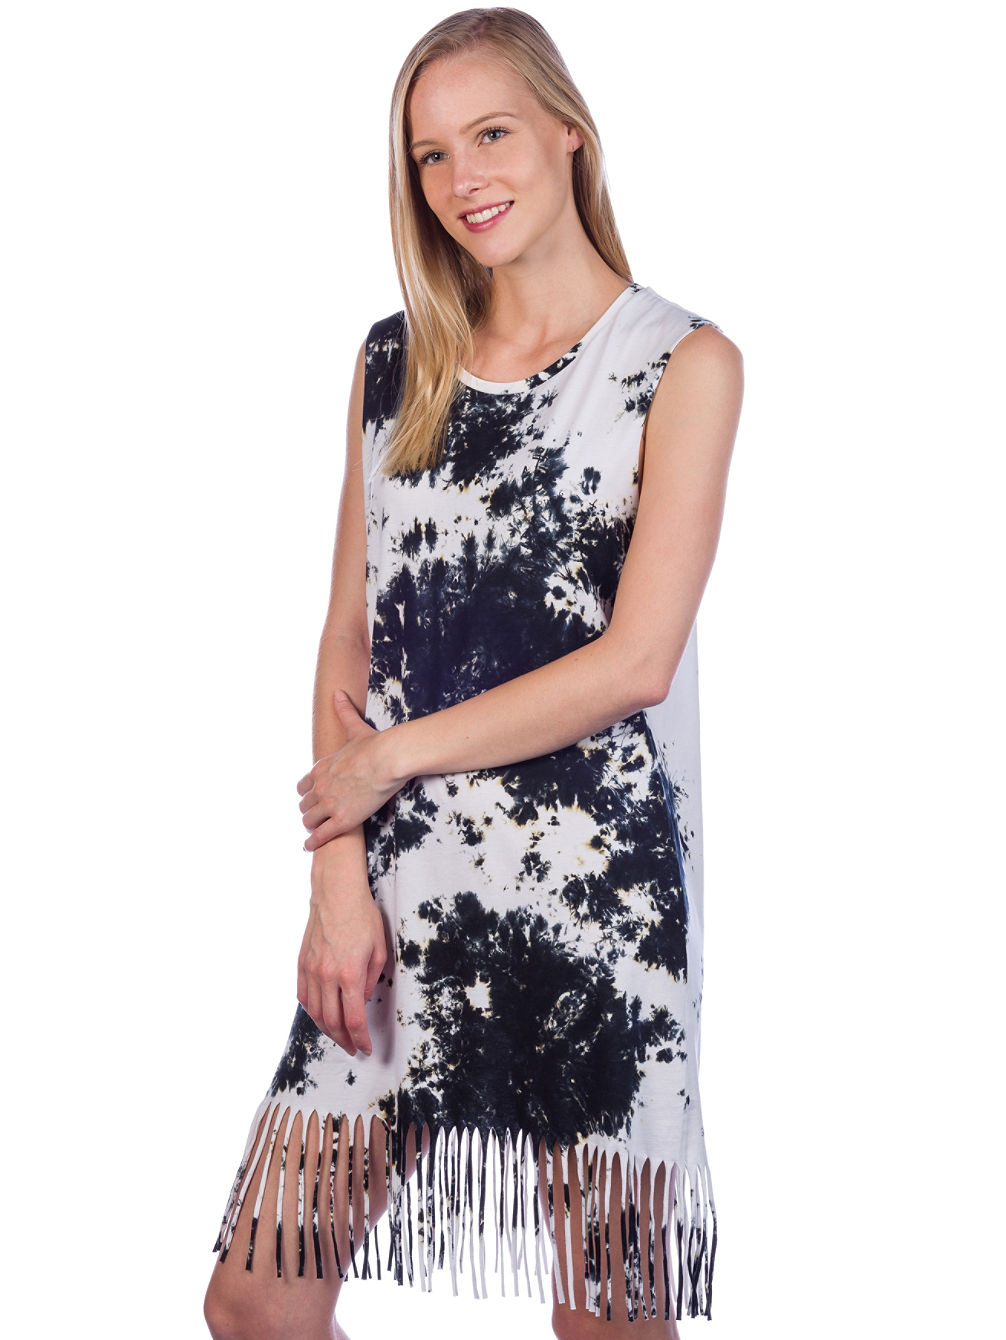 Fringy Tank Dress